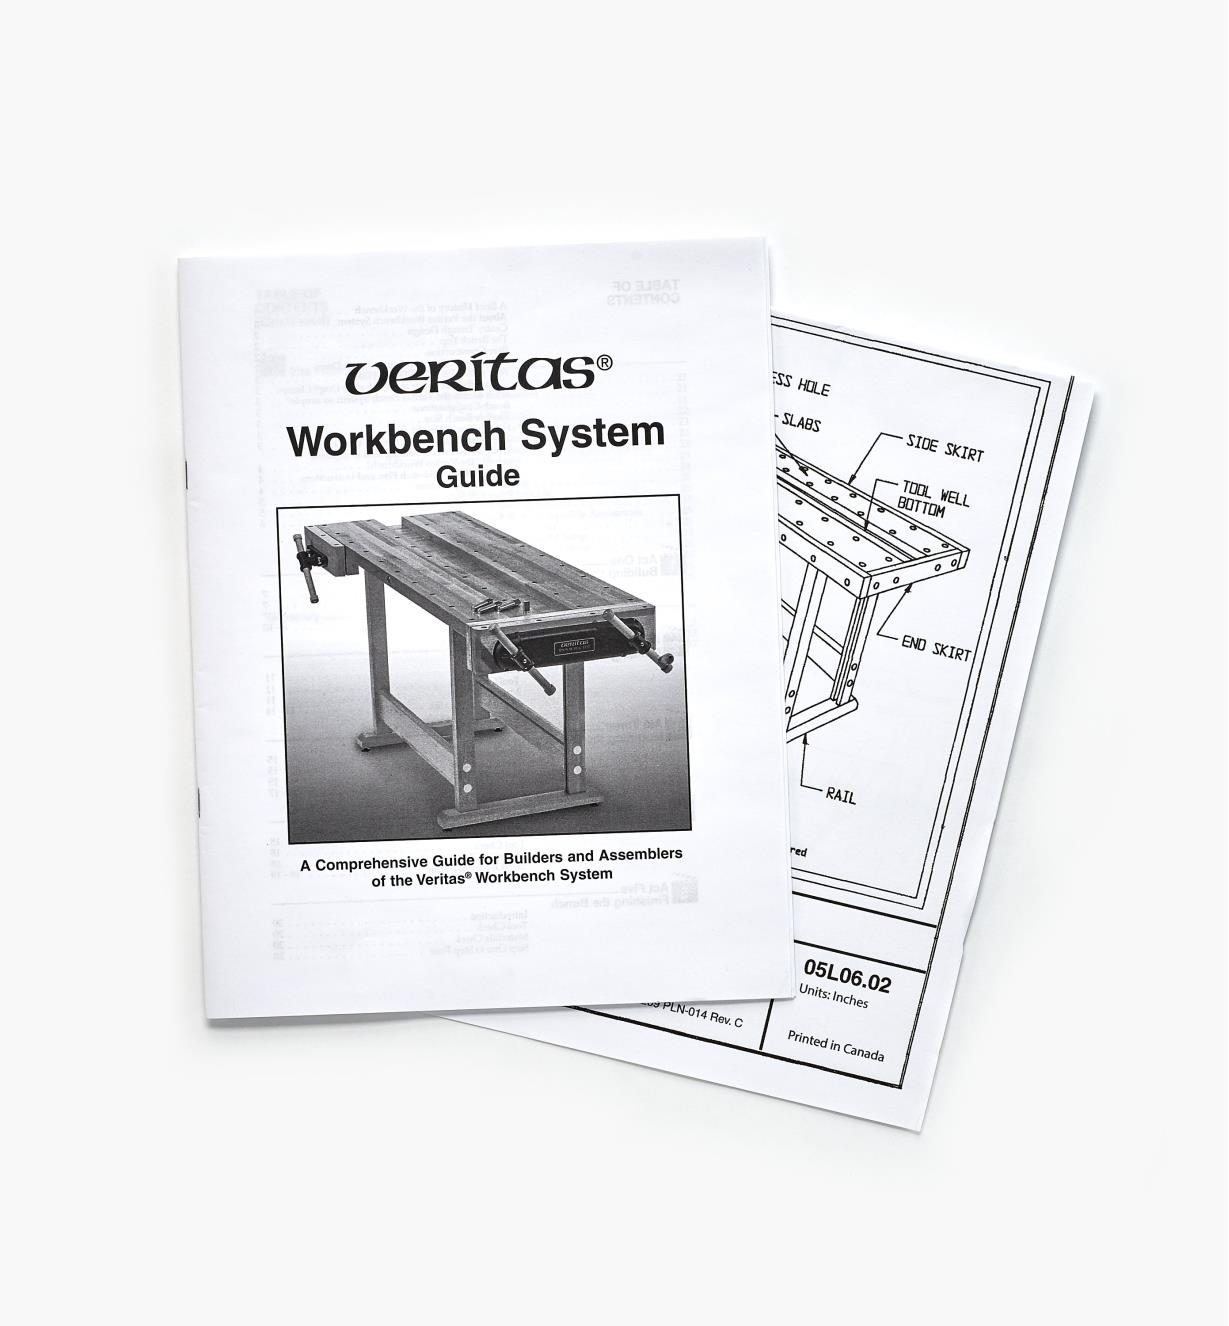 05L0602 - Veritas Workbench System Plan